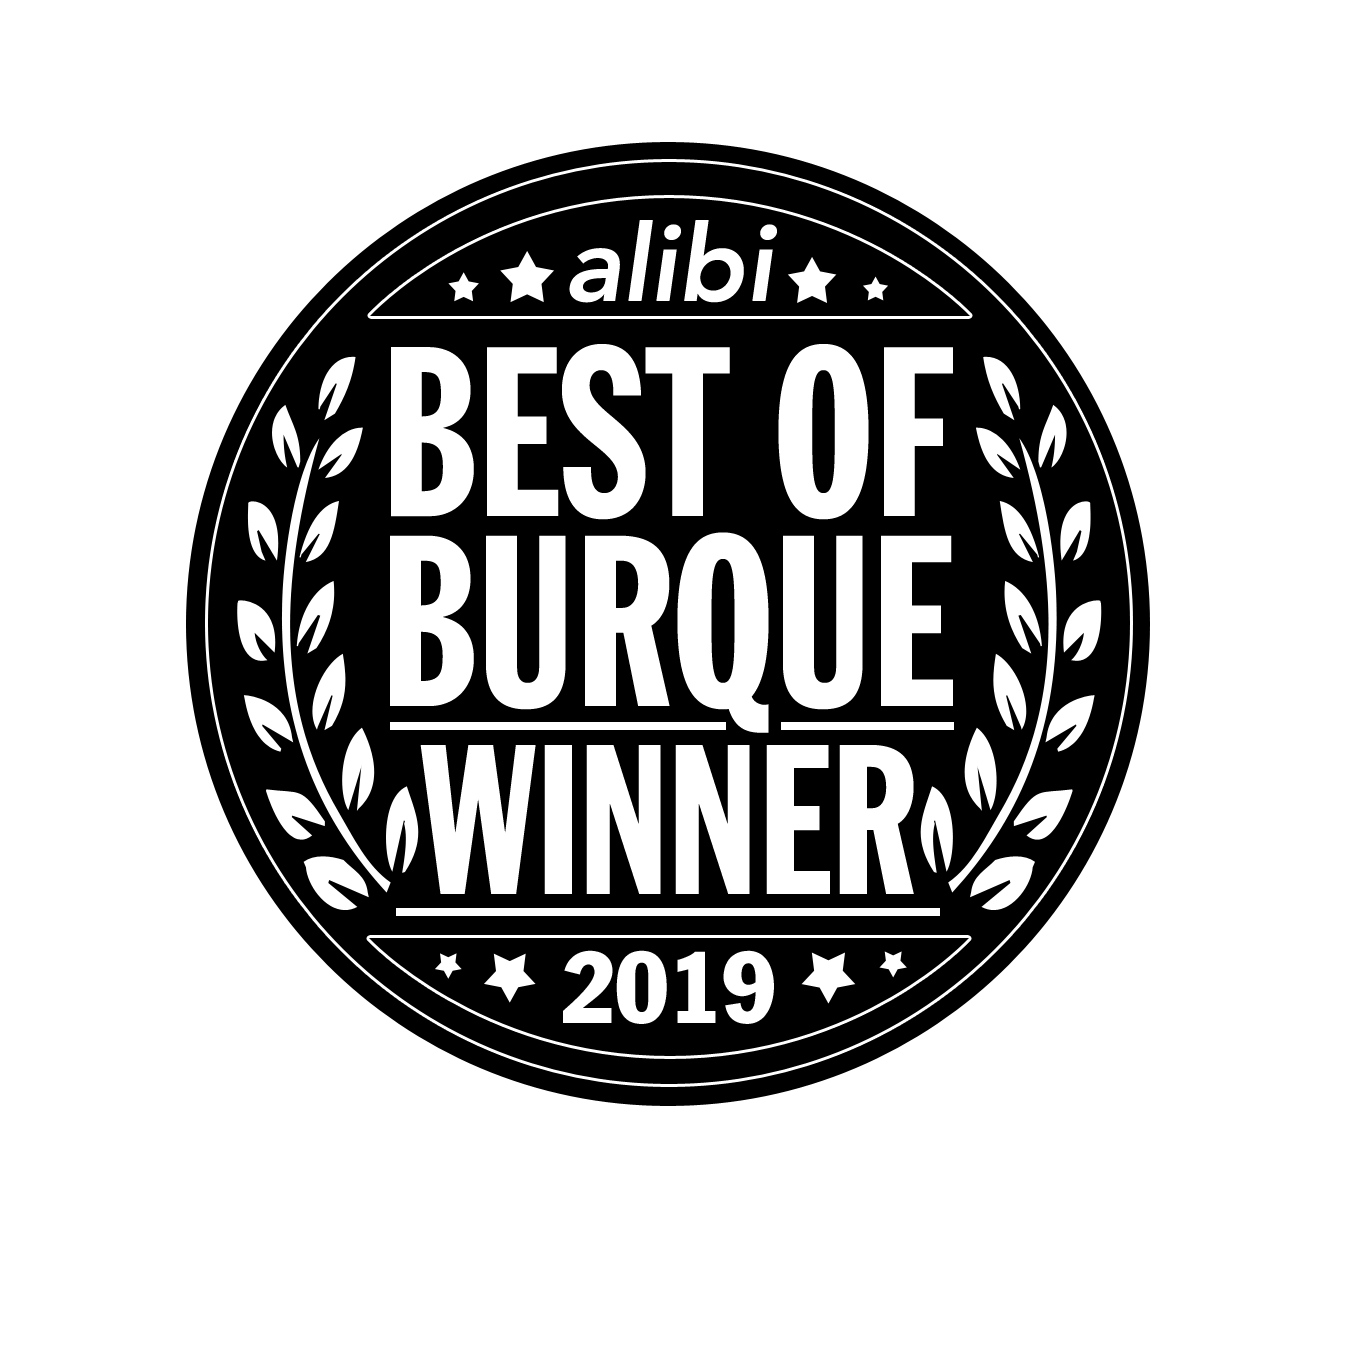 Best of Burque 2019 Winner